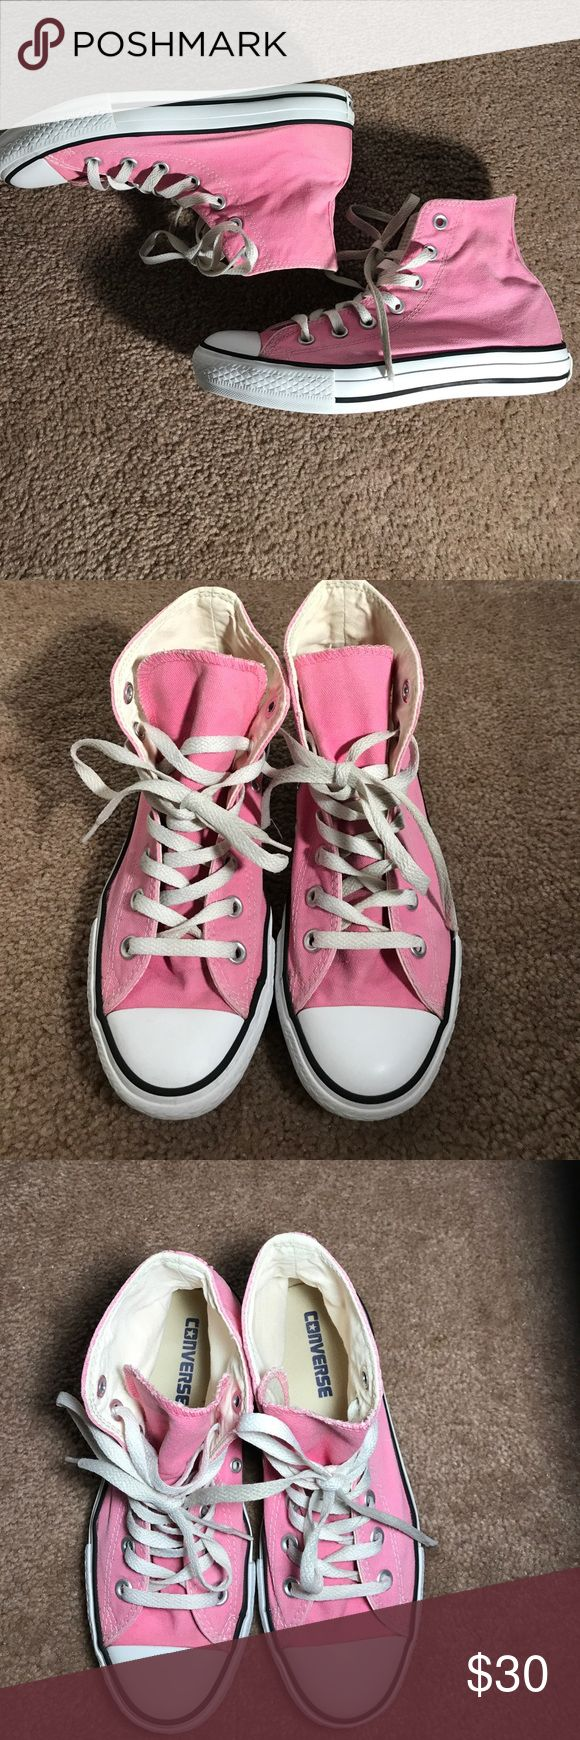 Pink Hightop Converse Like new pink high top converse, barely worn maybe 2-3 times. Gorgeous color, they are out of the box clean in excellent condition. Feel free to ask questions and make me and offer! Converse Shoes Sneakers